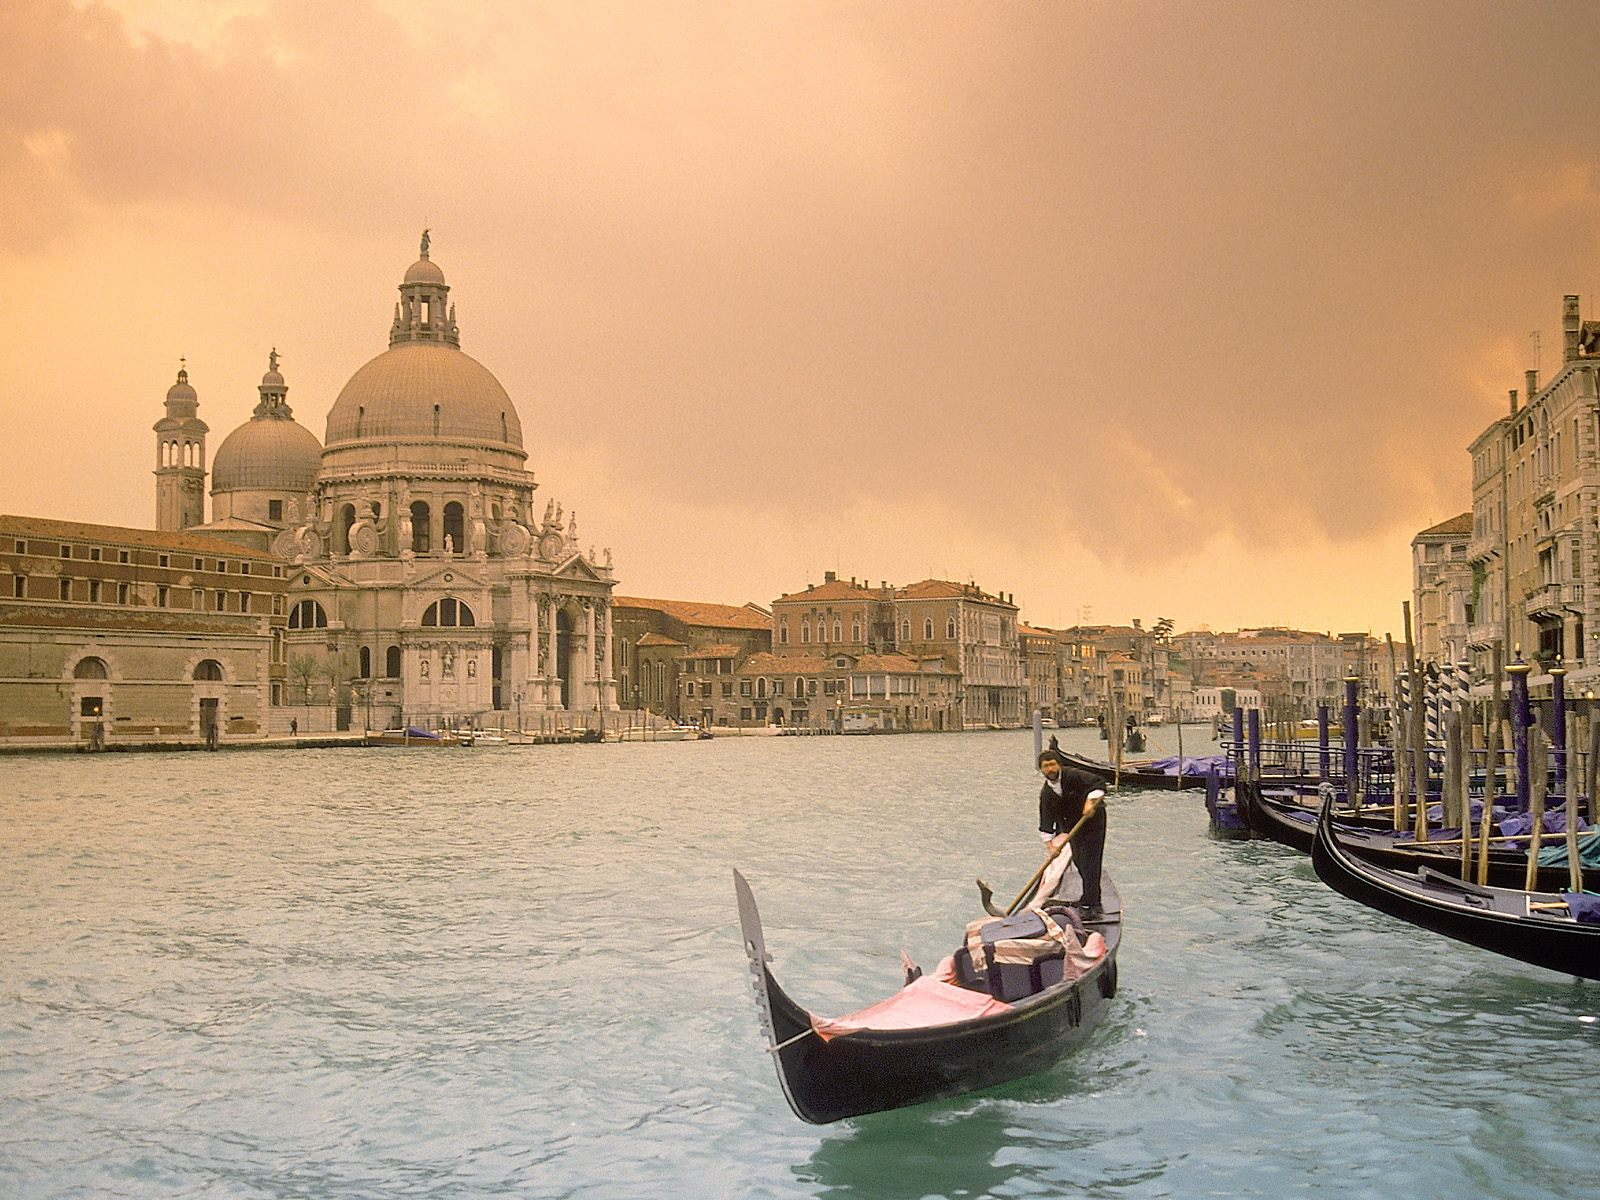 Sunset Over Grand Canal Venice Italy